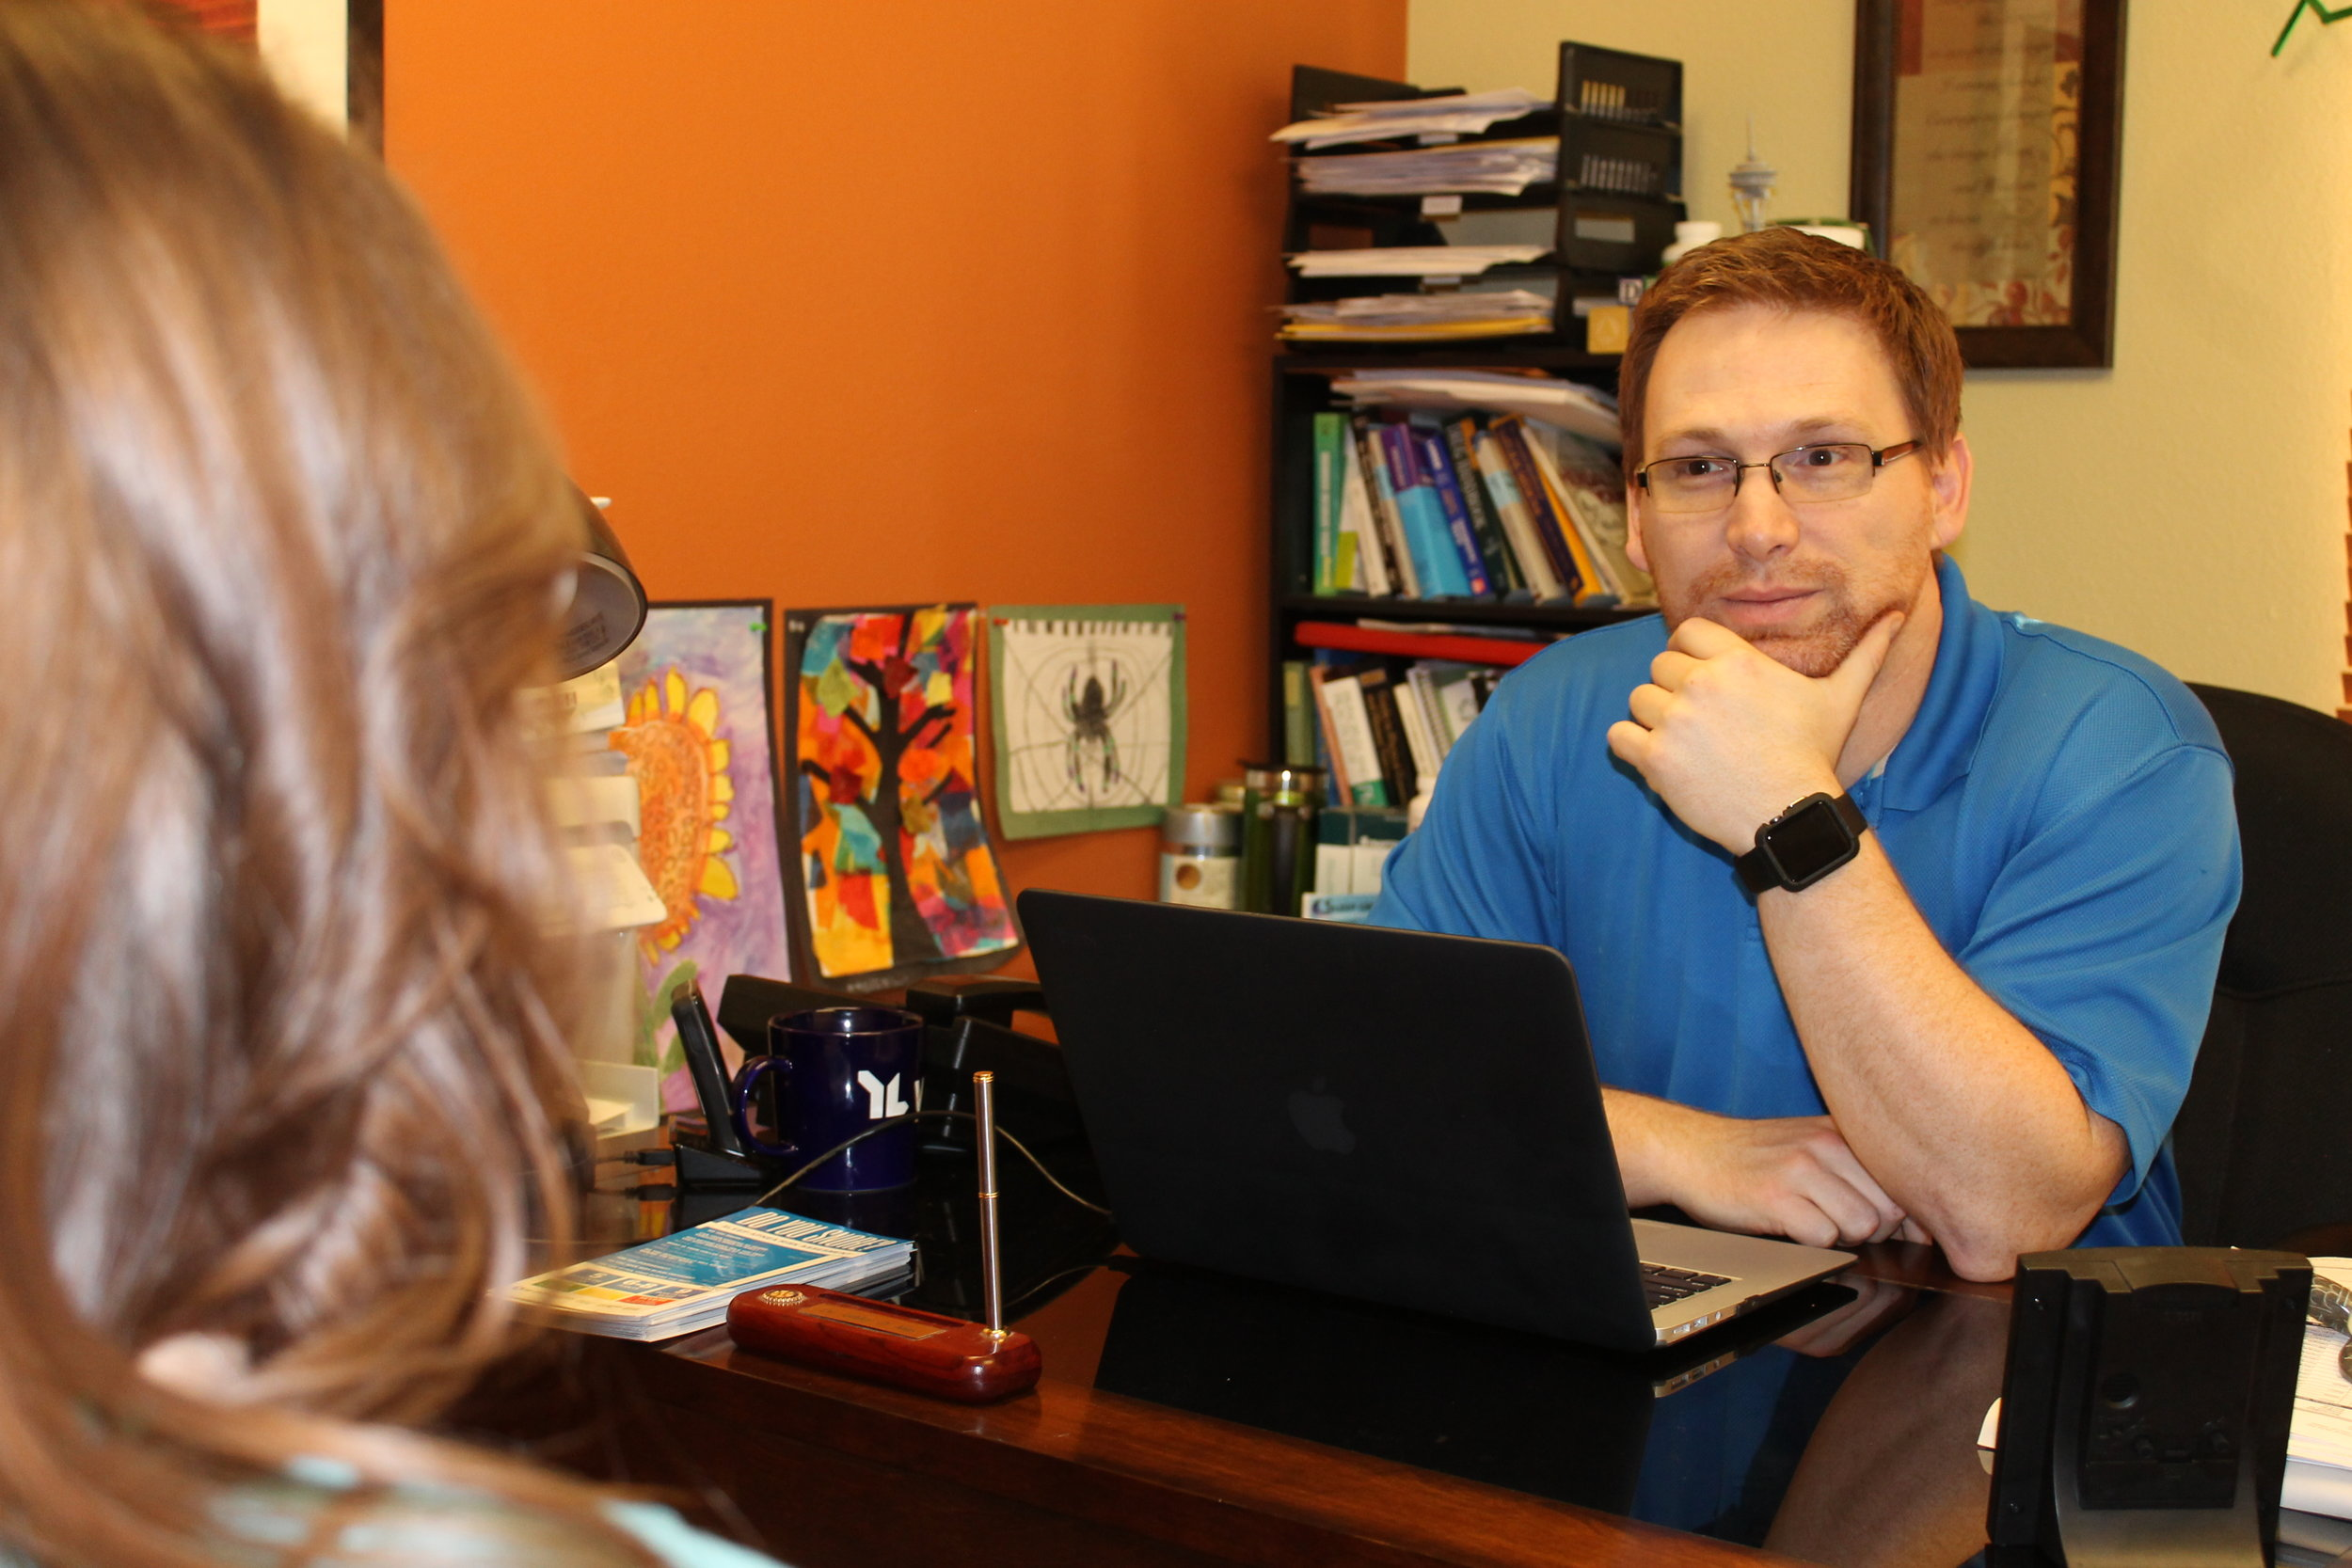 Dr. Ashley May, ND listening to his patient at the Alaska Center for Natural Medicine.